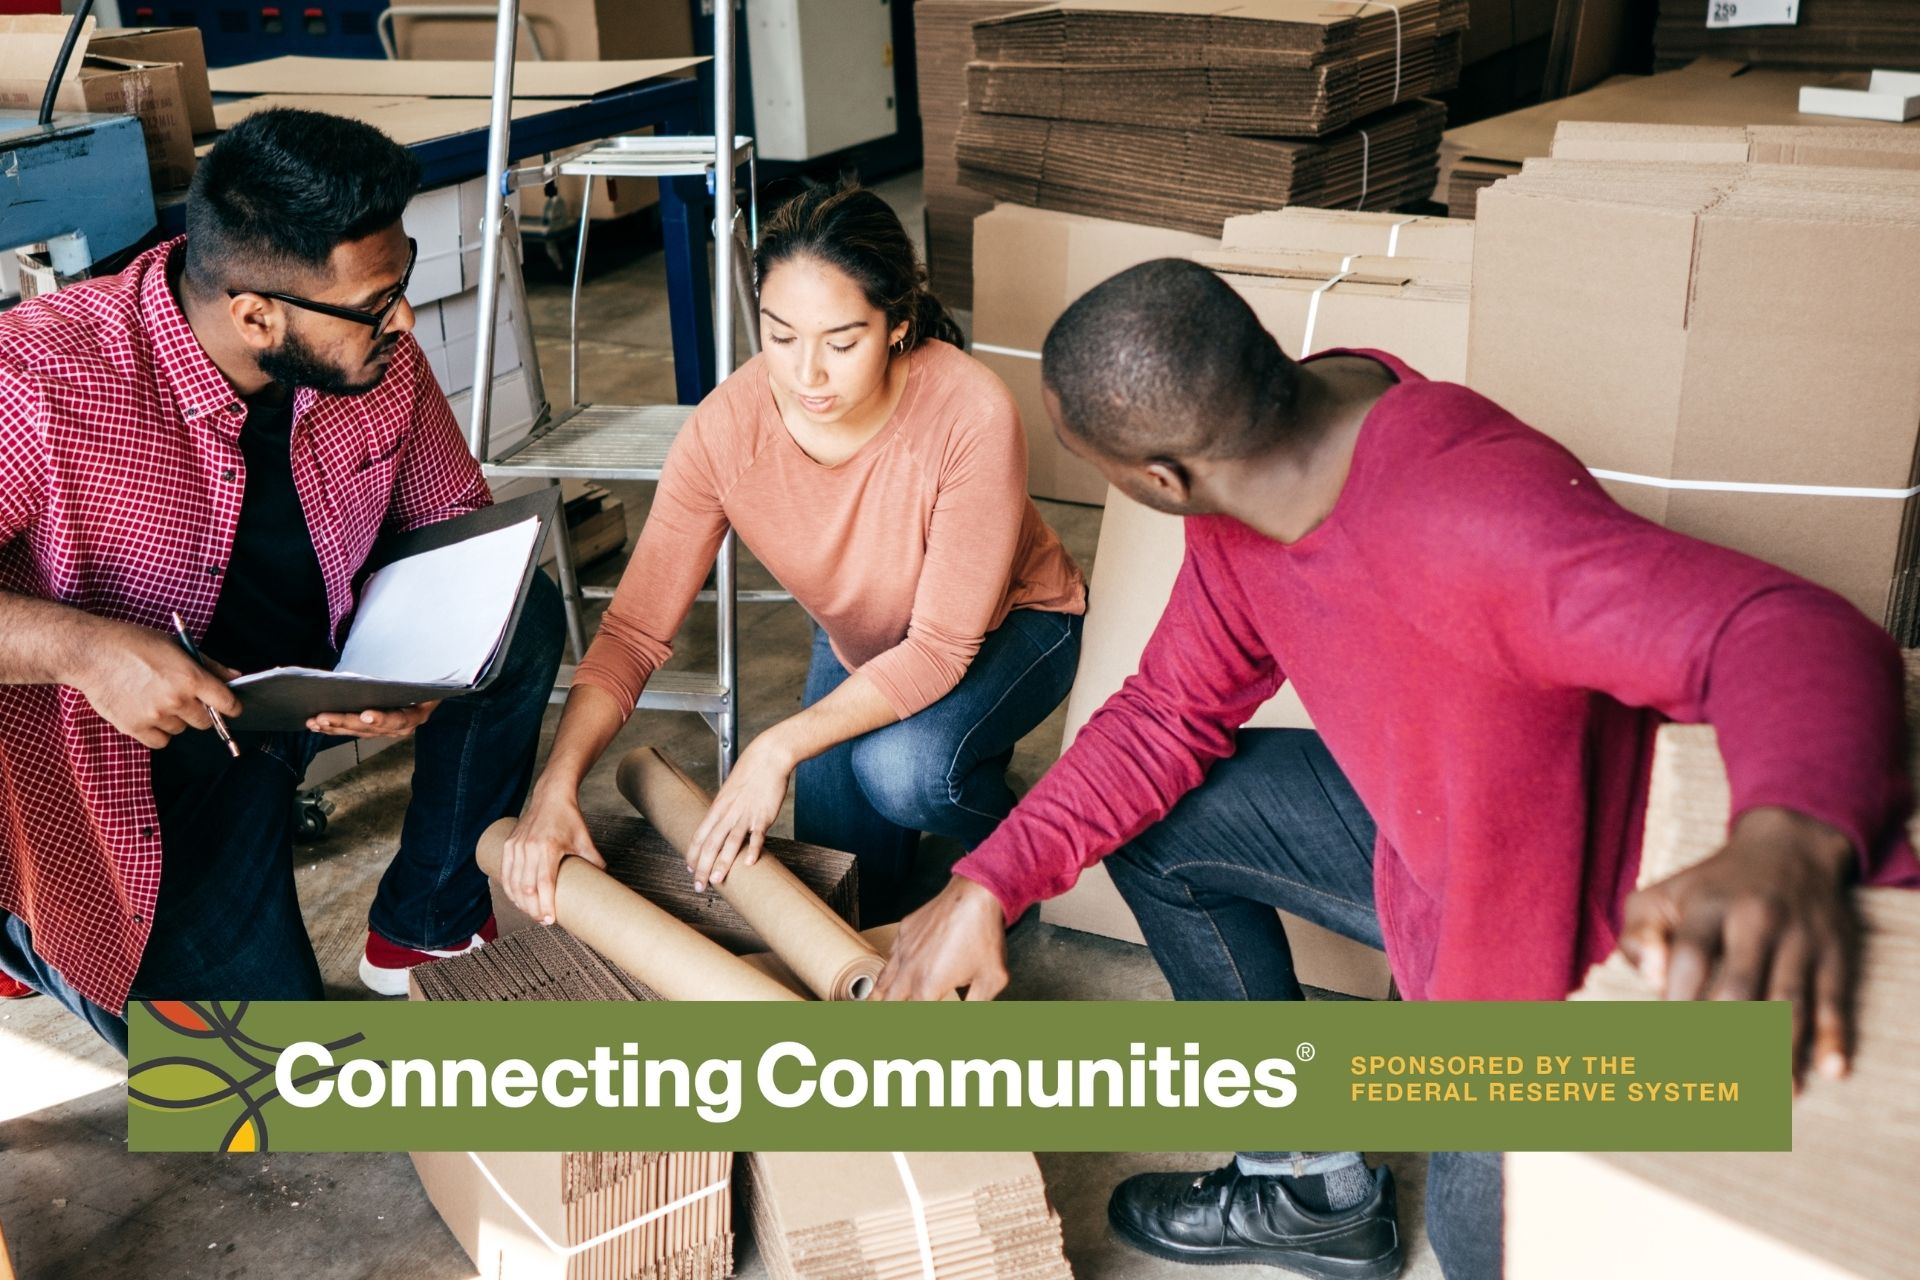 Connecting Communities